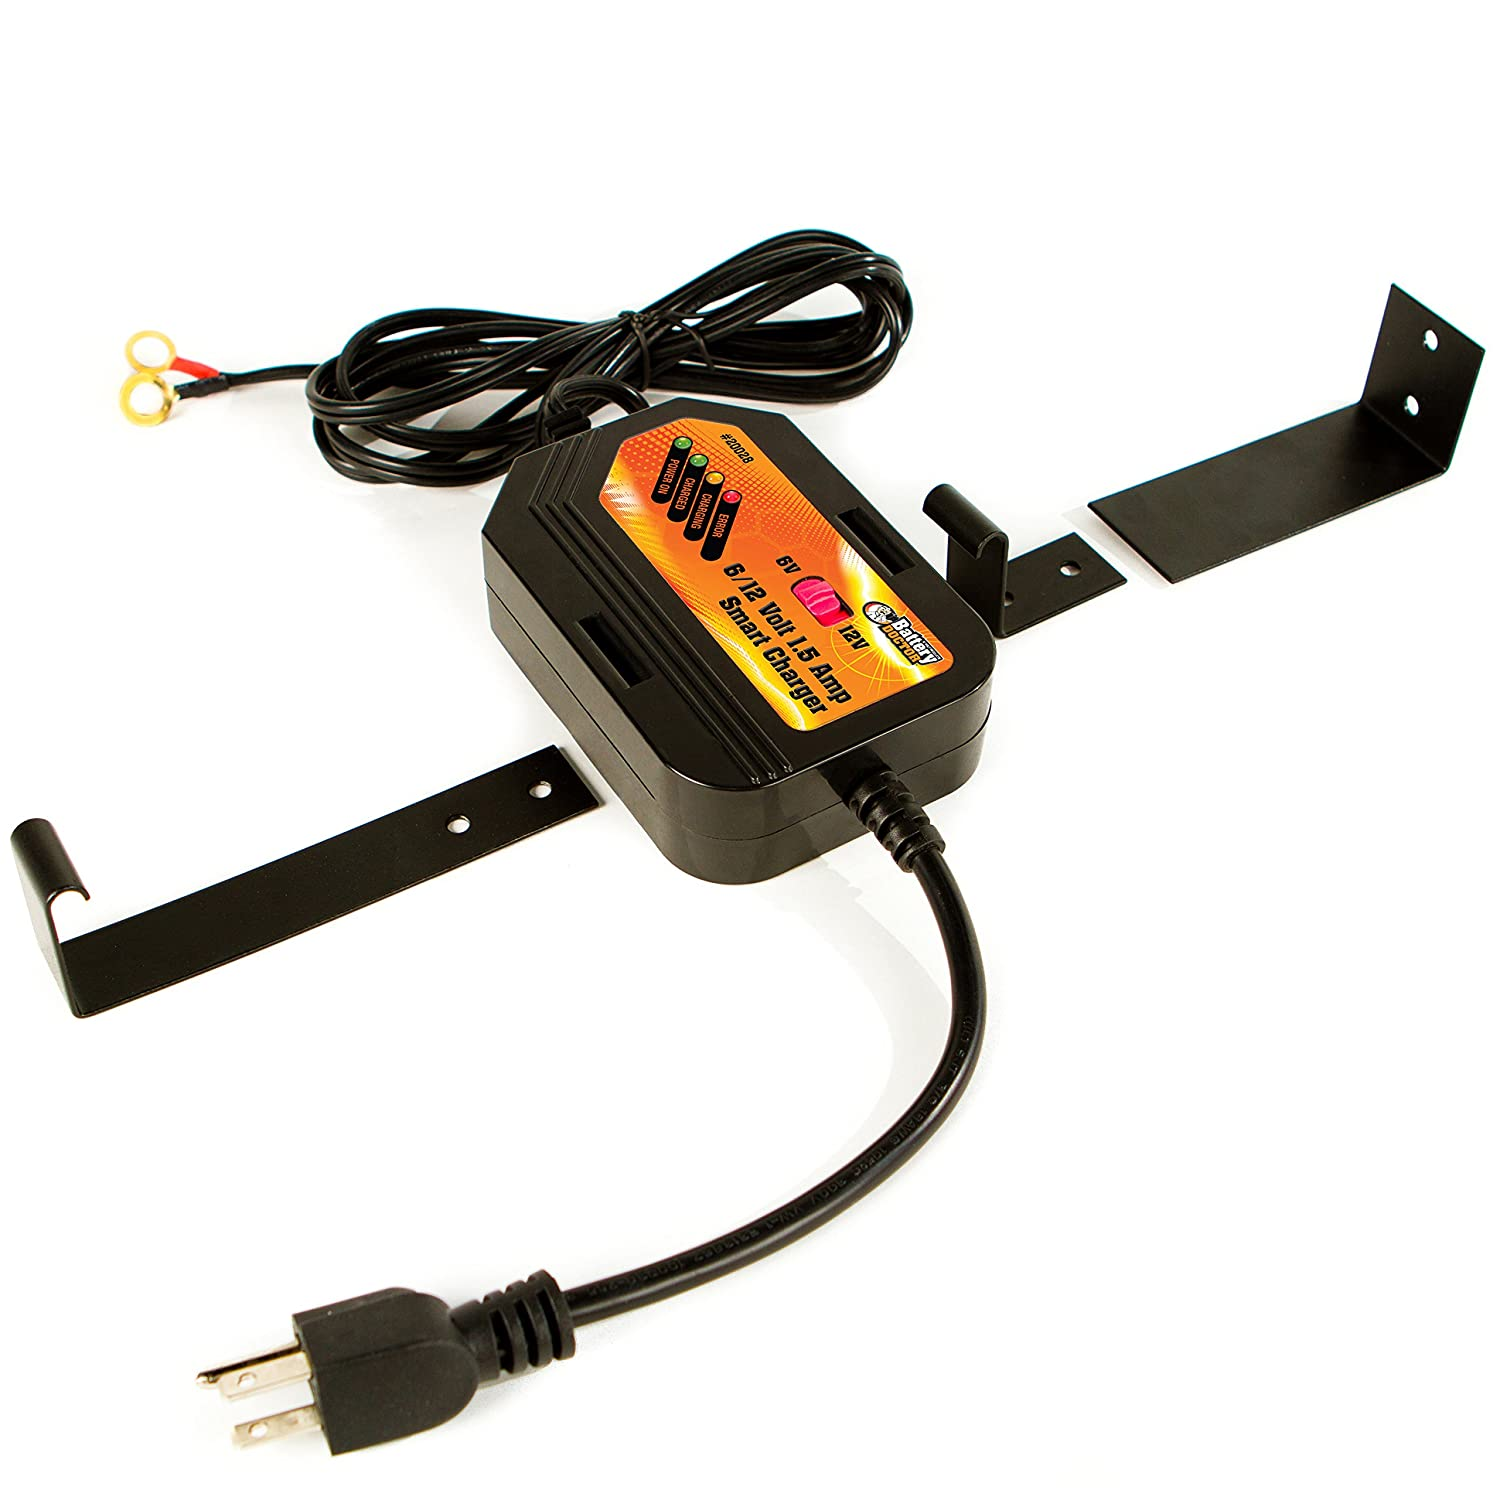 Wirthco 20028 Battery Doctor Black Cec Certified 6 12v Wiring Onboard Charger 15 Amp On Board Smart Automotive